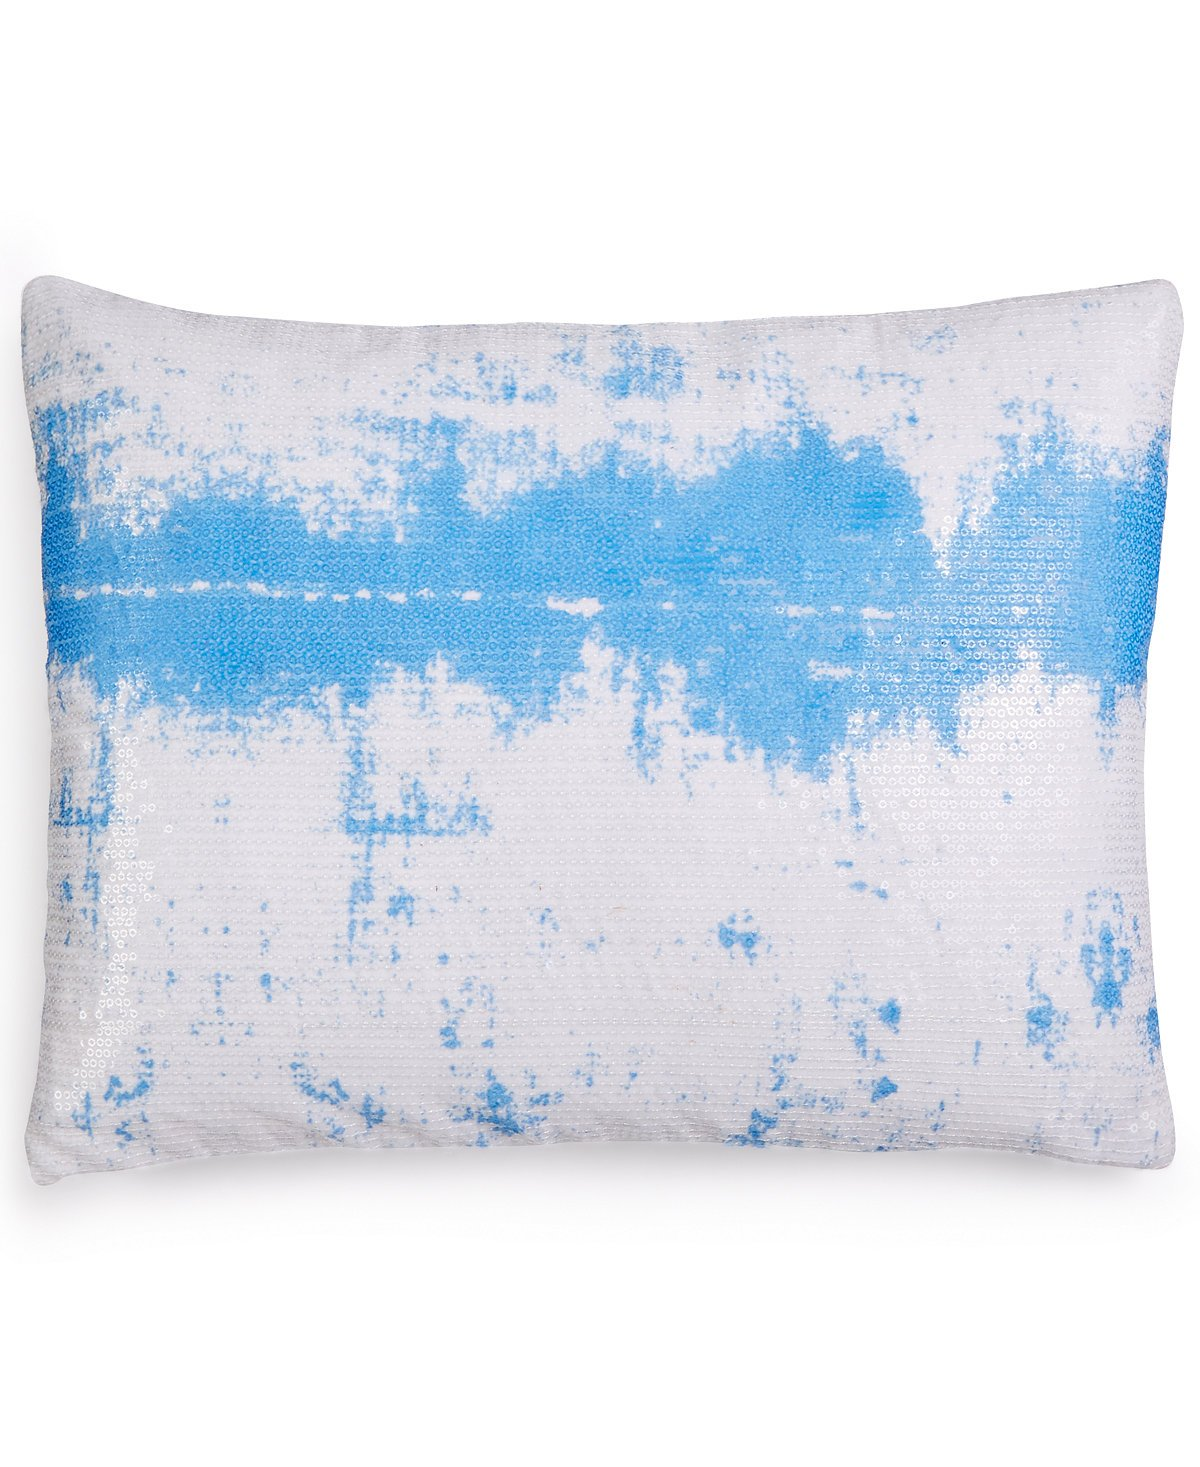 Calvin Klein Home City Plaid Sequin Ombre, 12x16 Dec Pillow, Sky